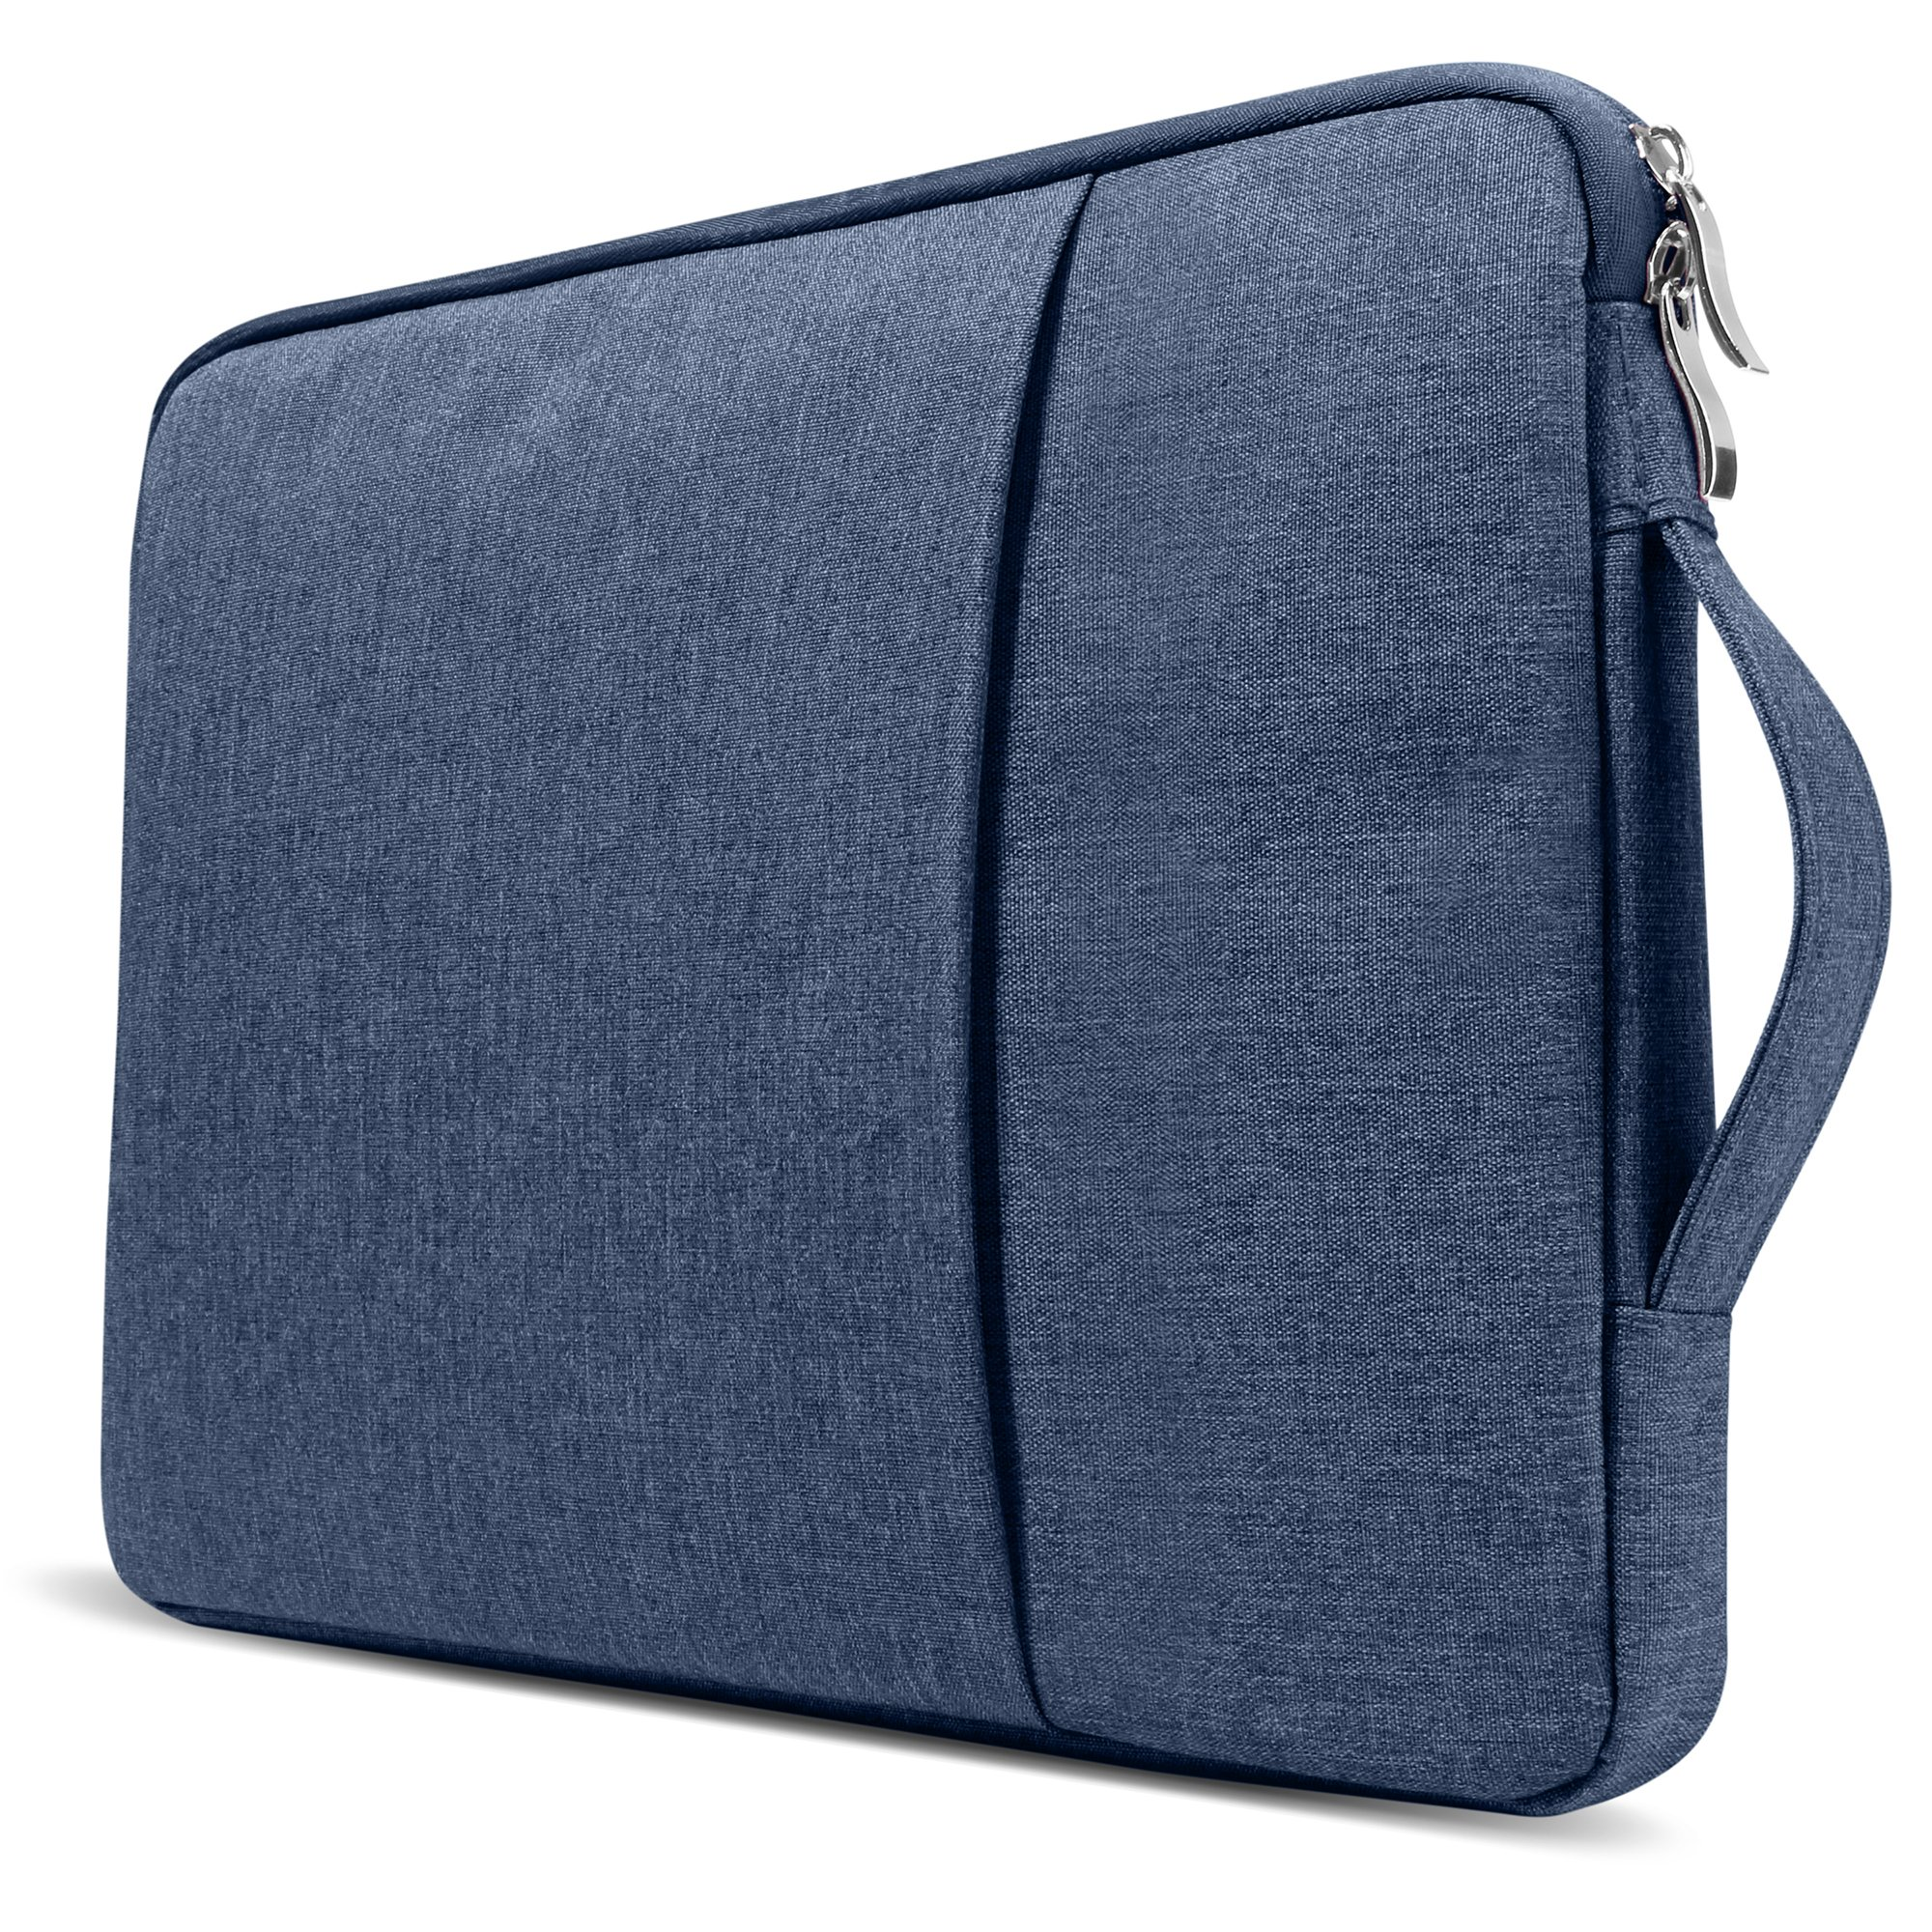 GMYLE 2 in 1 Bundle Soft-Touch Frosted Hard Case for Macbook Air 13 inch (Model: A1369/A1466) and 13-13.3 inch Water Repellent Laptop Sleeve with Handle and Pocket - Navy Blue by GMYLE (Image #2)